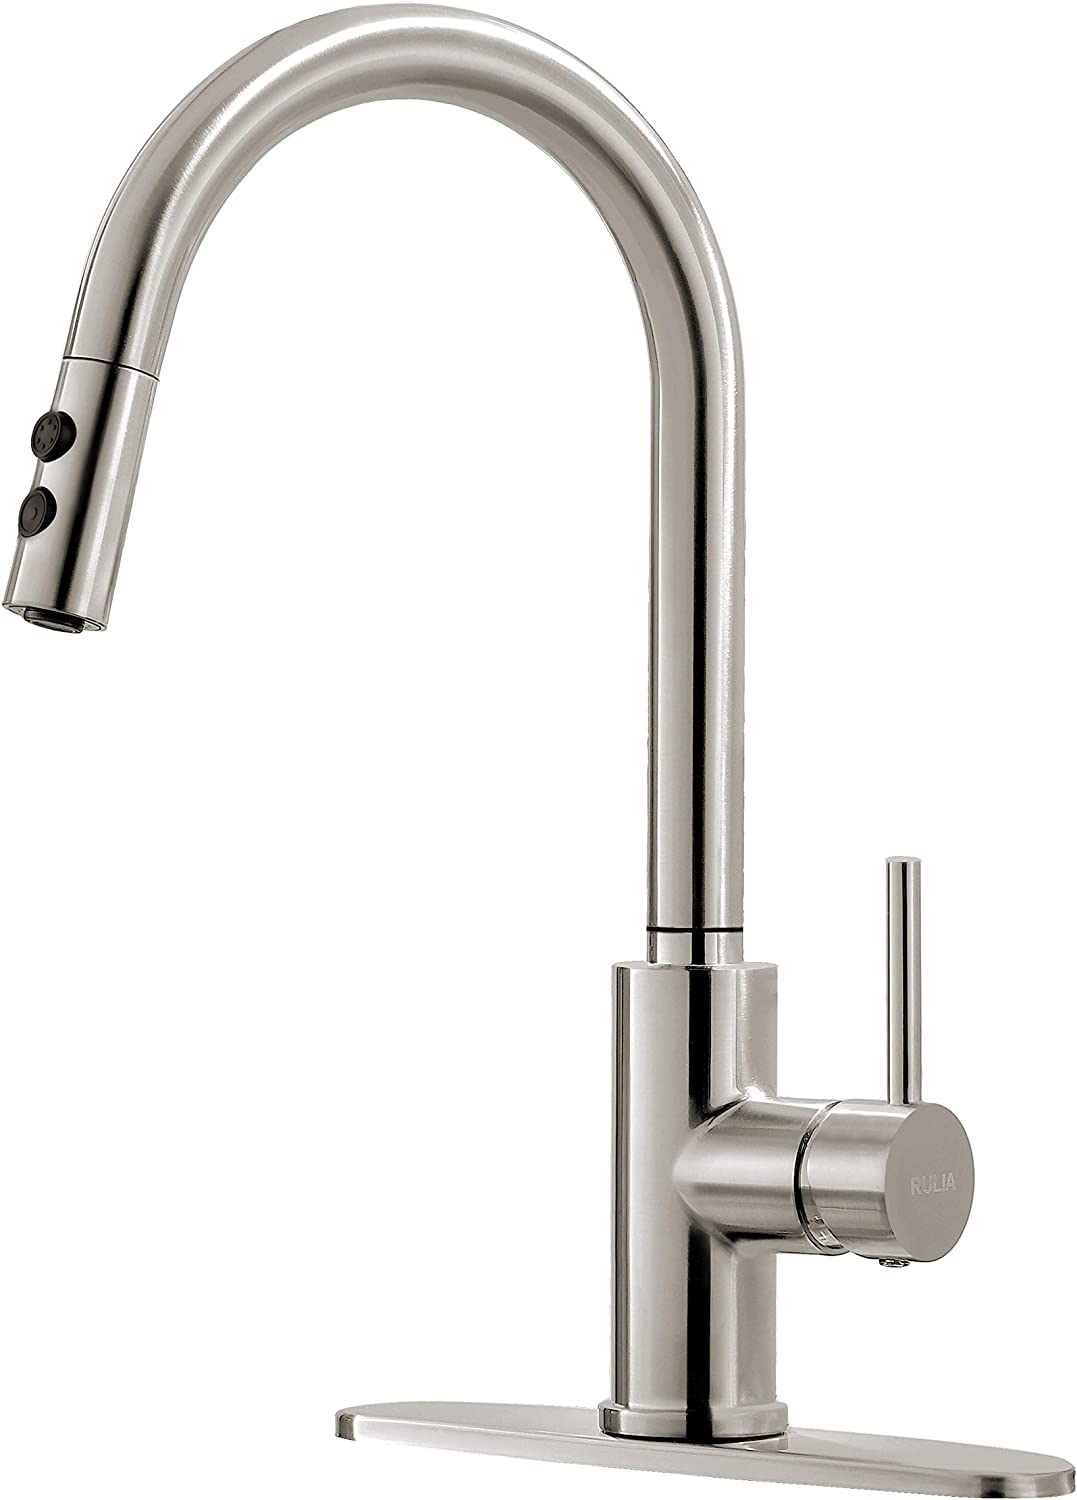 Kitchen Faucet, Kitchen Sink Faucet, Sink Faucet, Pull-down Kitchen Faucets, Bar Kitchen Faucet, Brushed Nickel, Stainless Steel, RULIA RB1018